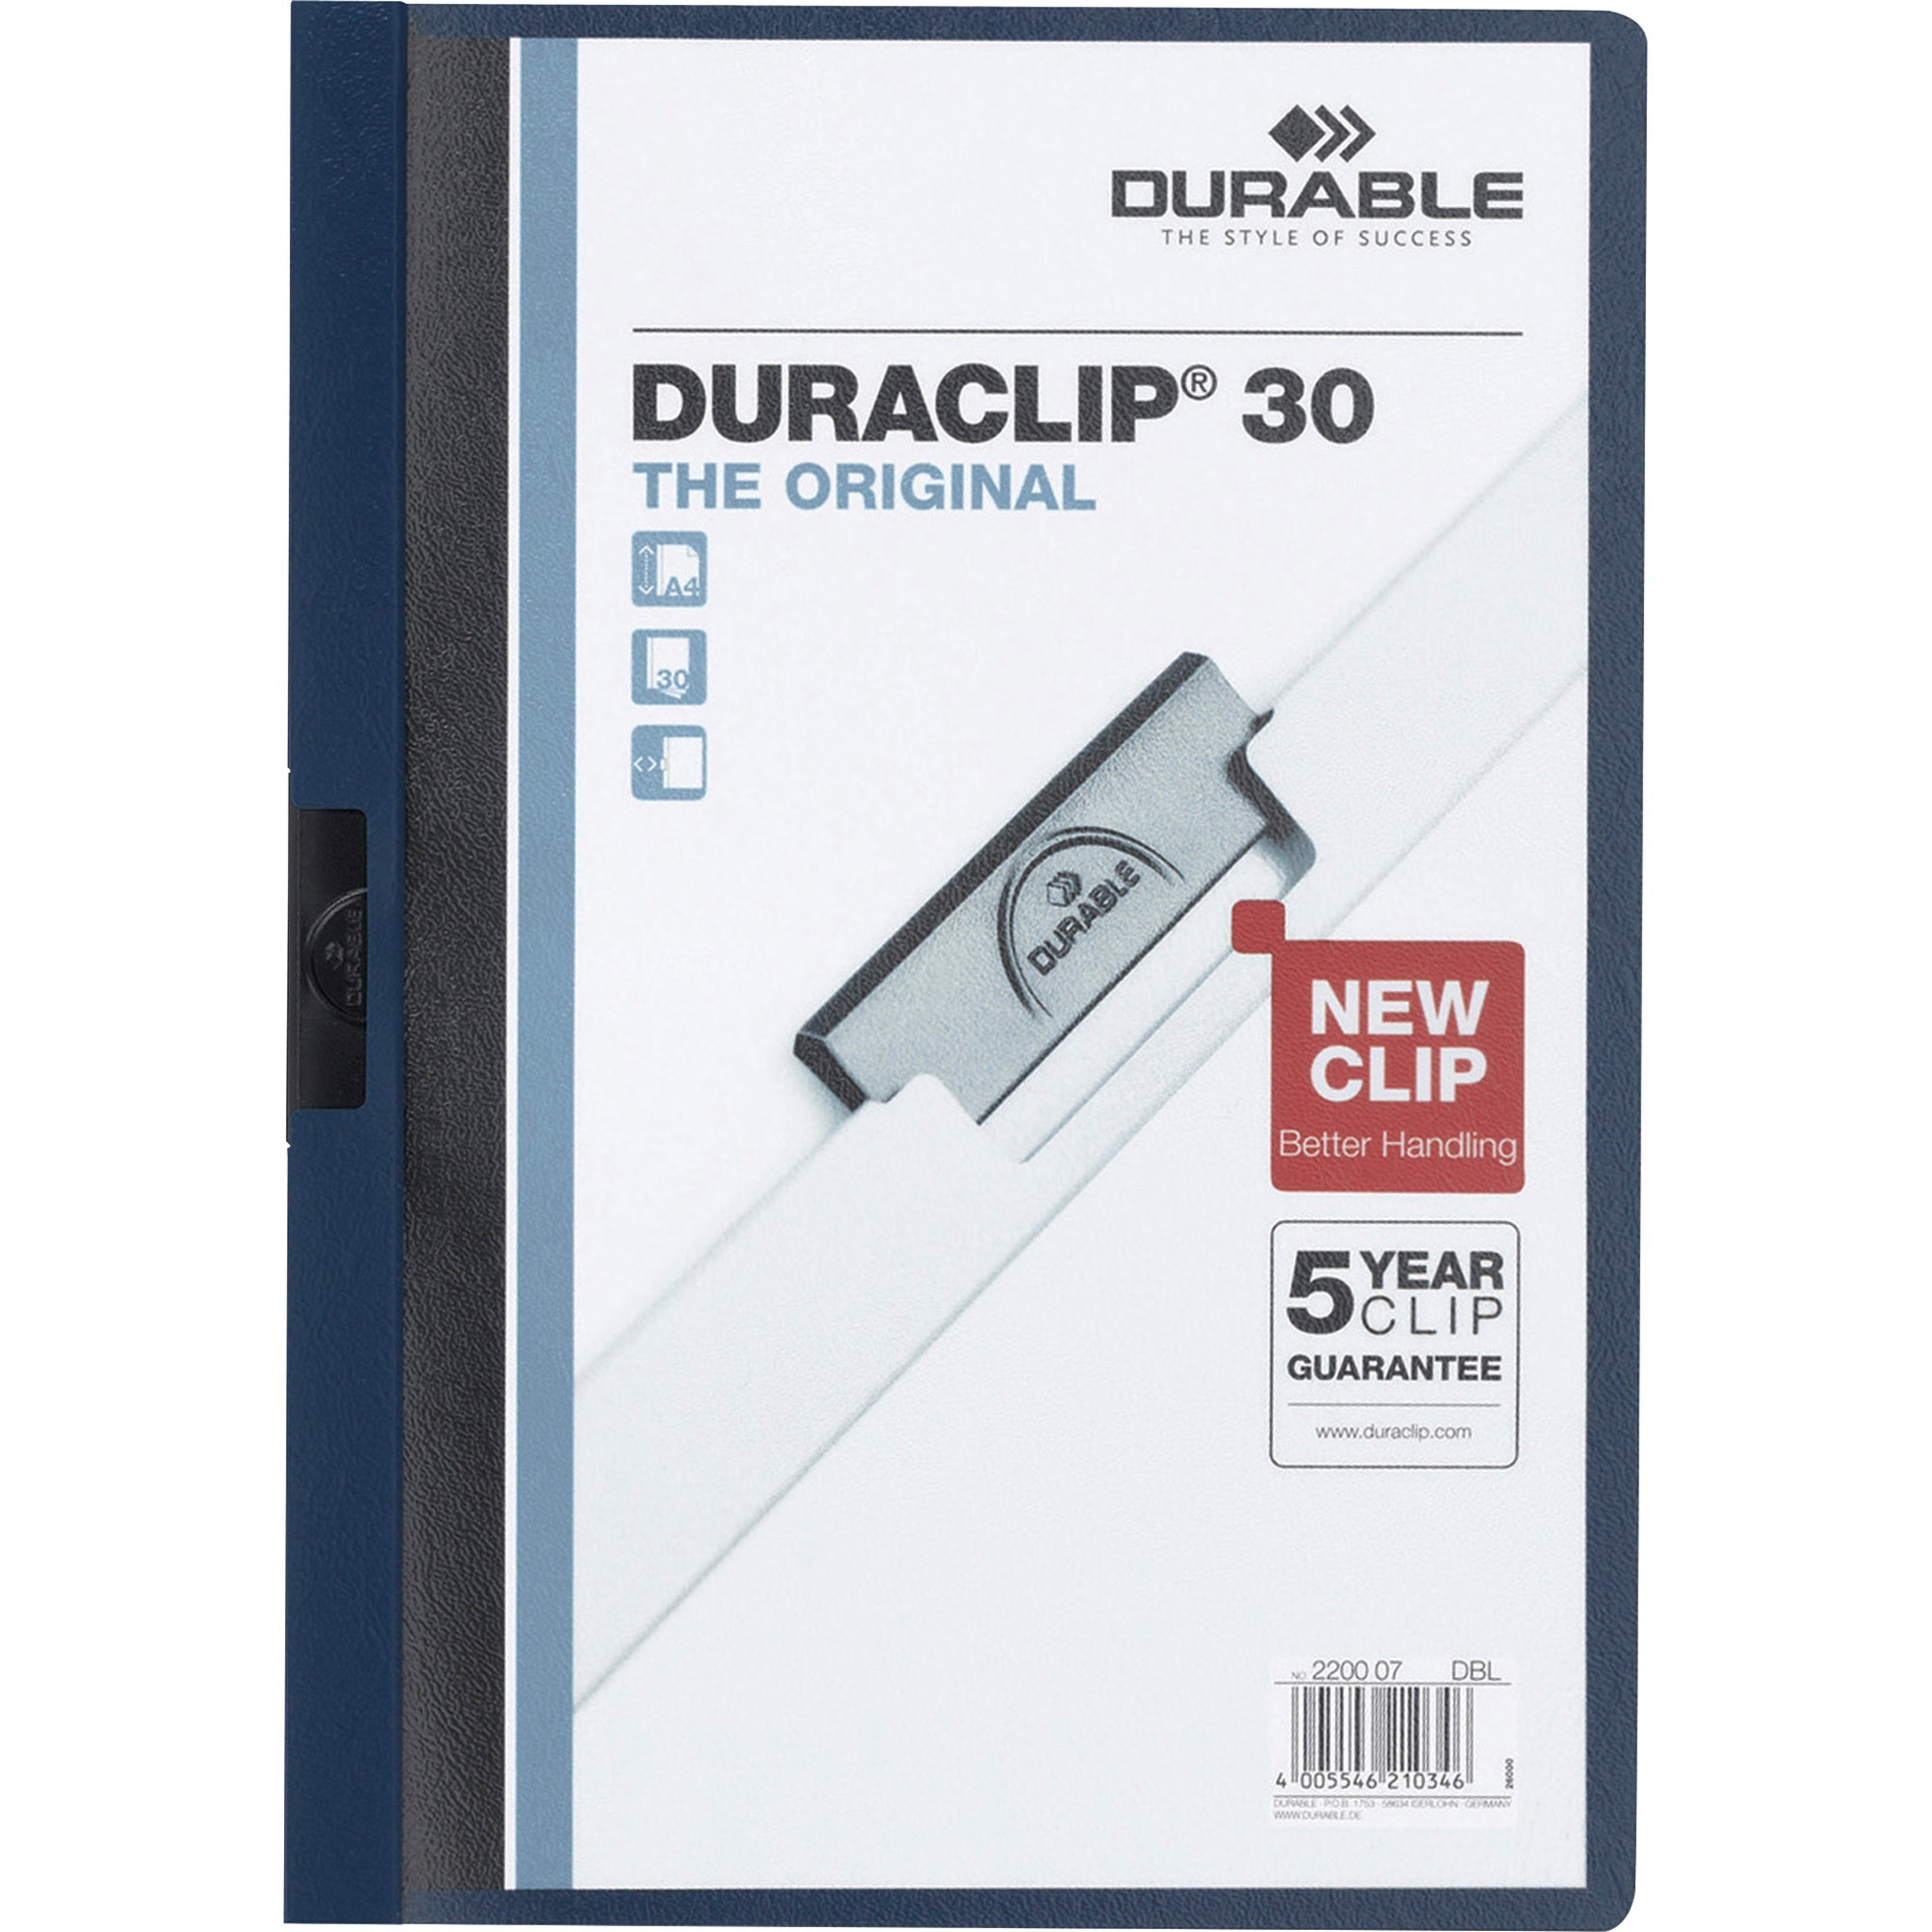 DURABLE, DBL220301, Duraclip Report Covers, 1 Each, Black by DURABLE OFFICE PRODUCTS CORP.